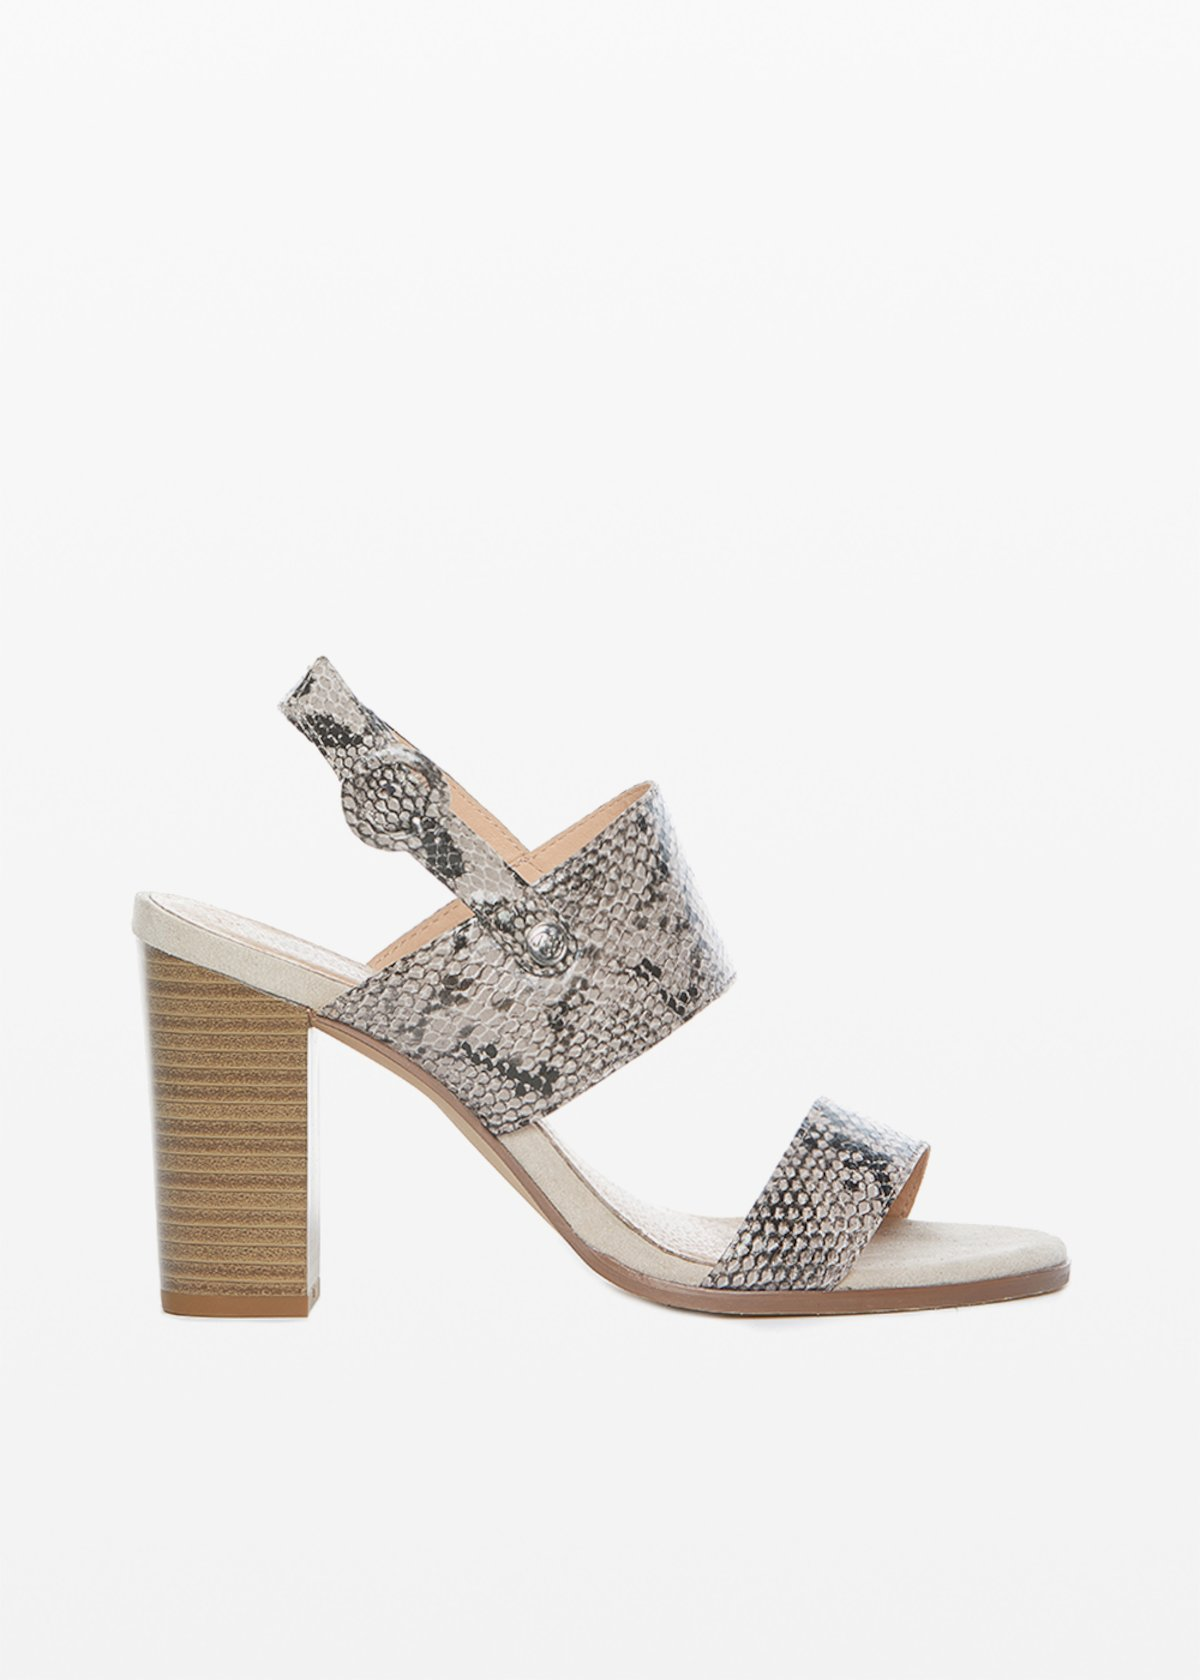 Faux leather Stephanie sandals python print - Beige Animalier - Woman - Category image